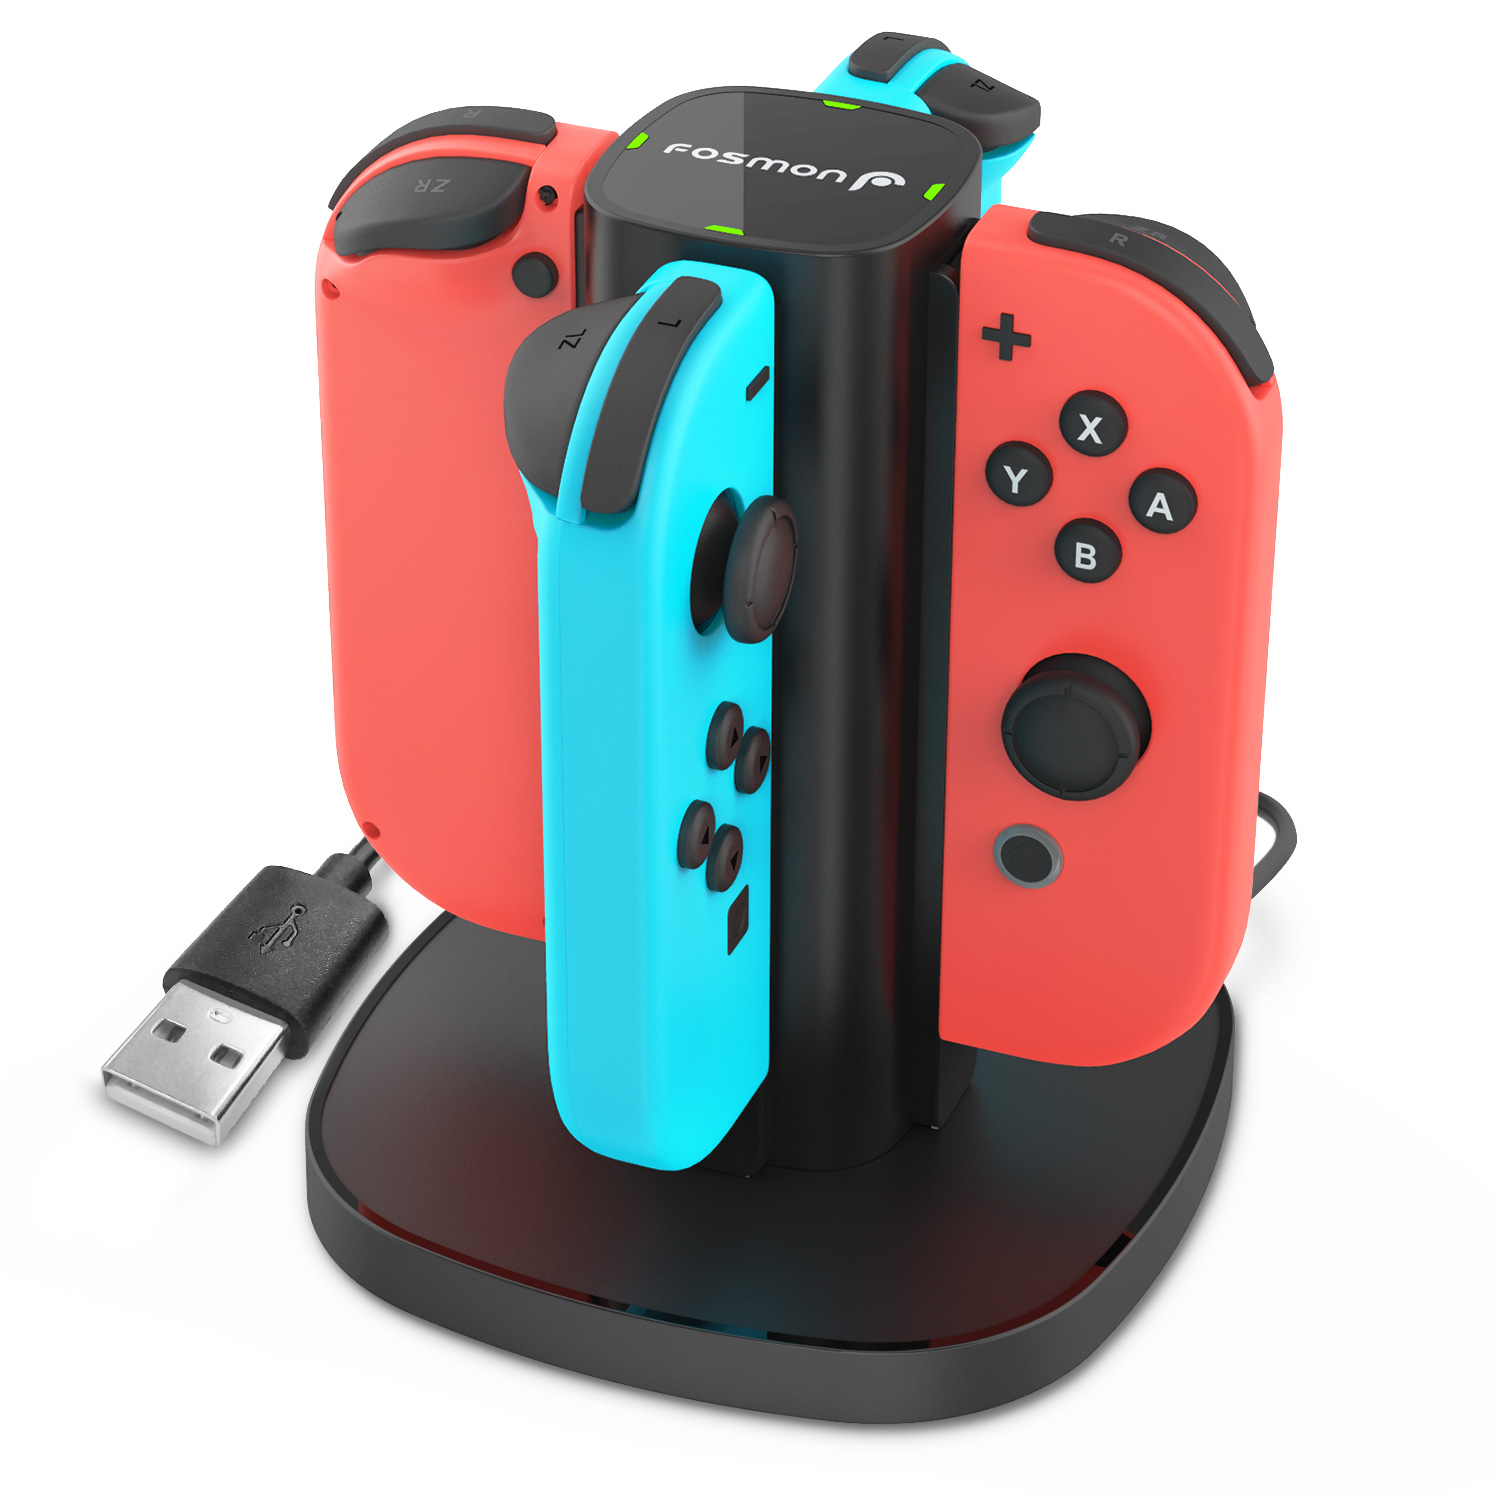 Charging Dock Switch, Fosmon 4-in-1 Joy-Con Charging Station Stand with LED Indicators for Nintendo Switch - Black